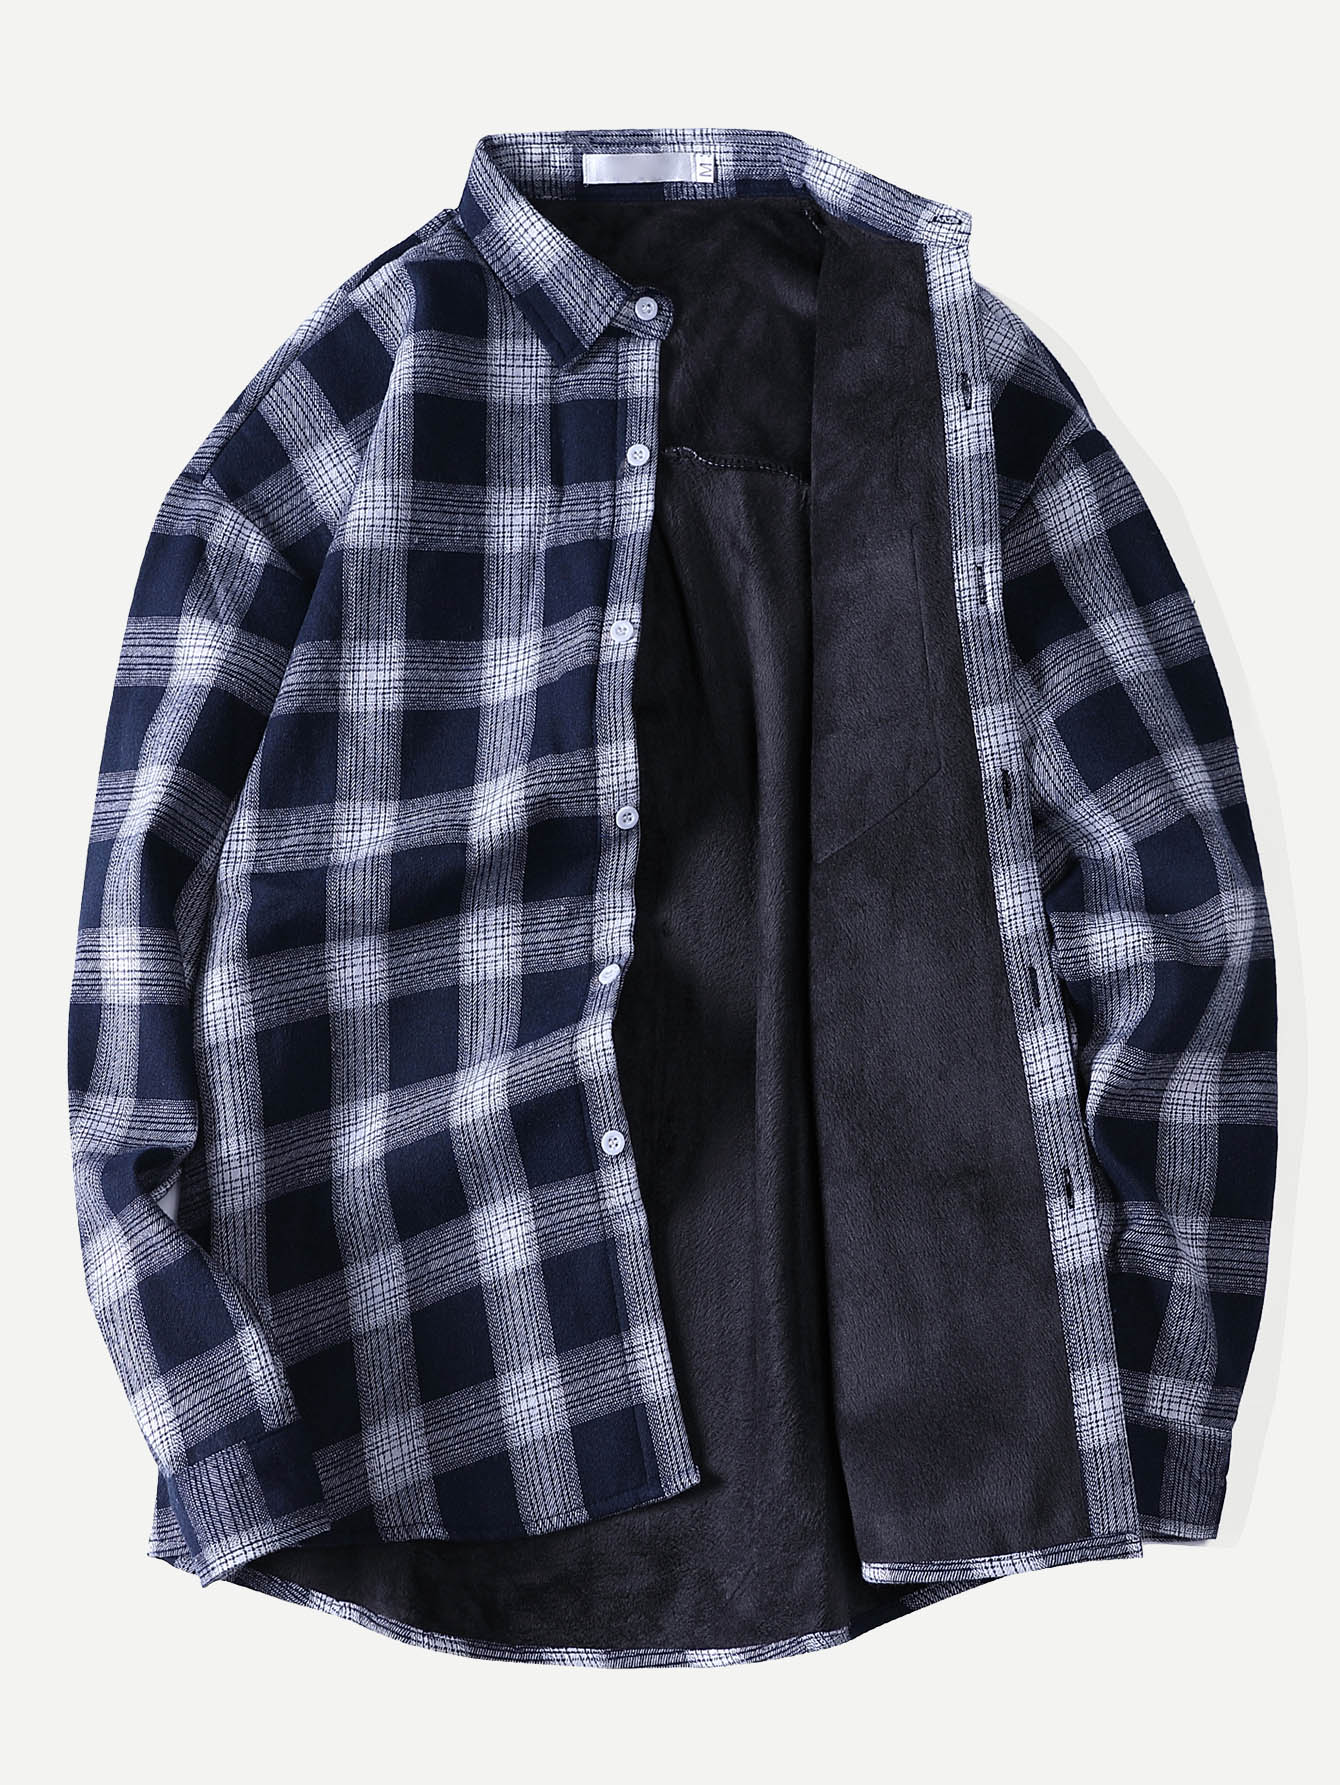 Men Velvet Lined Plaid Shirt Men Velvet Lined Plaid Shirt